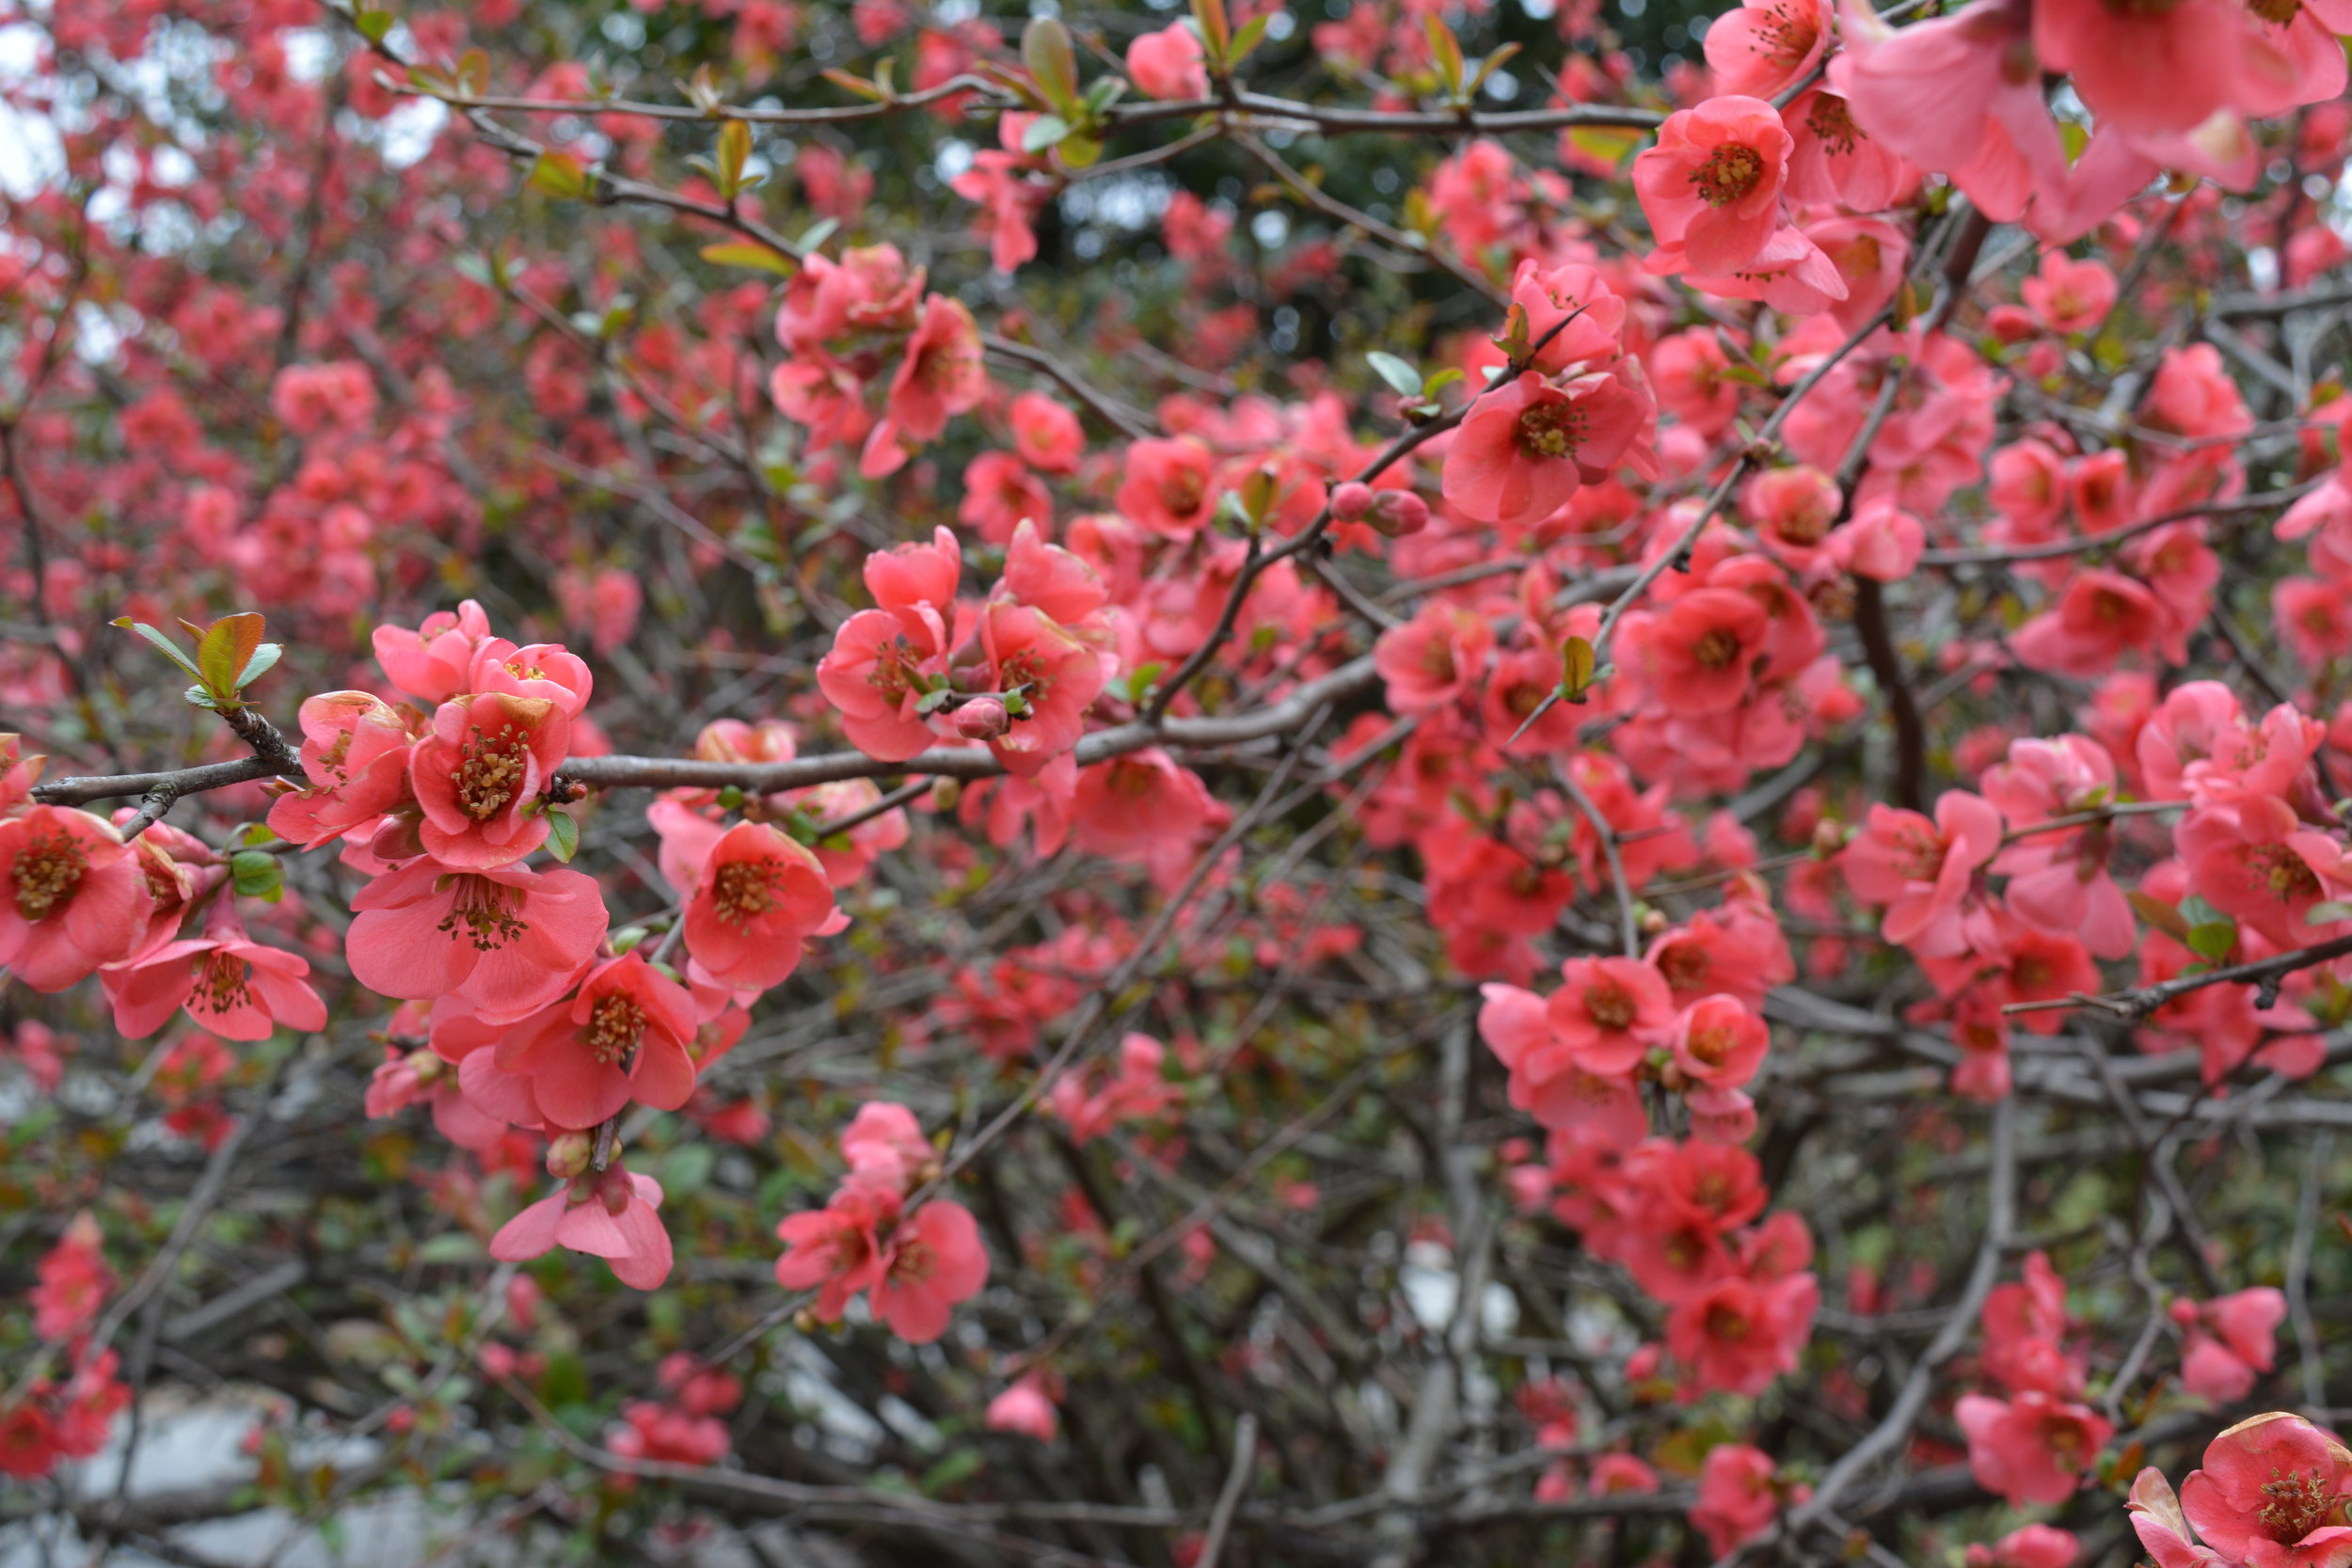 Quince bloom - Intreegue Design